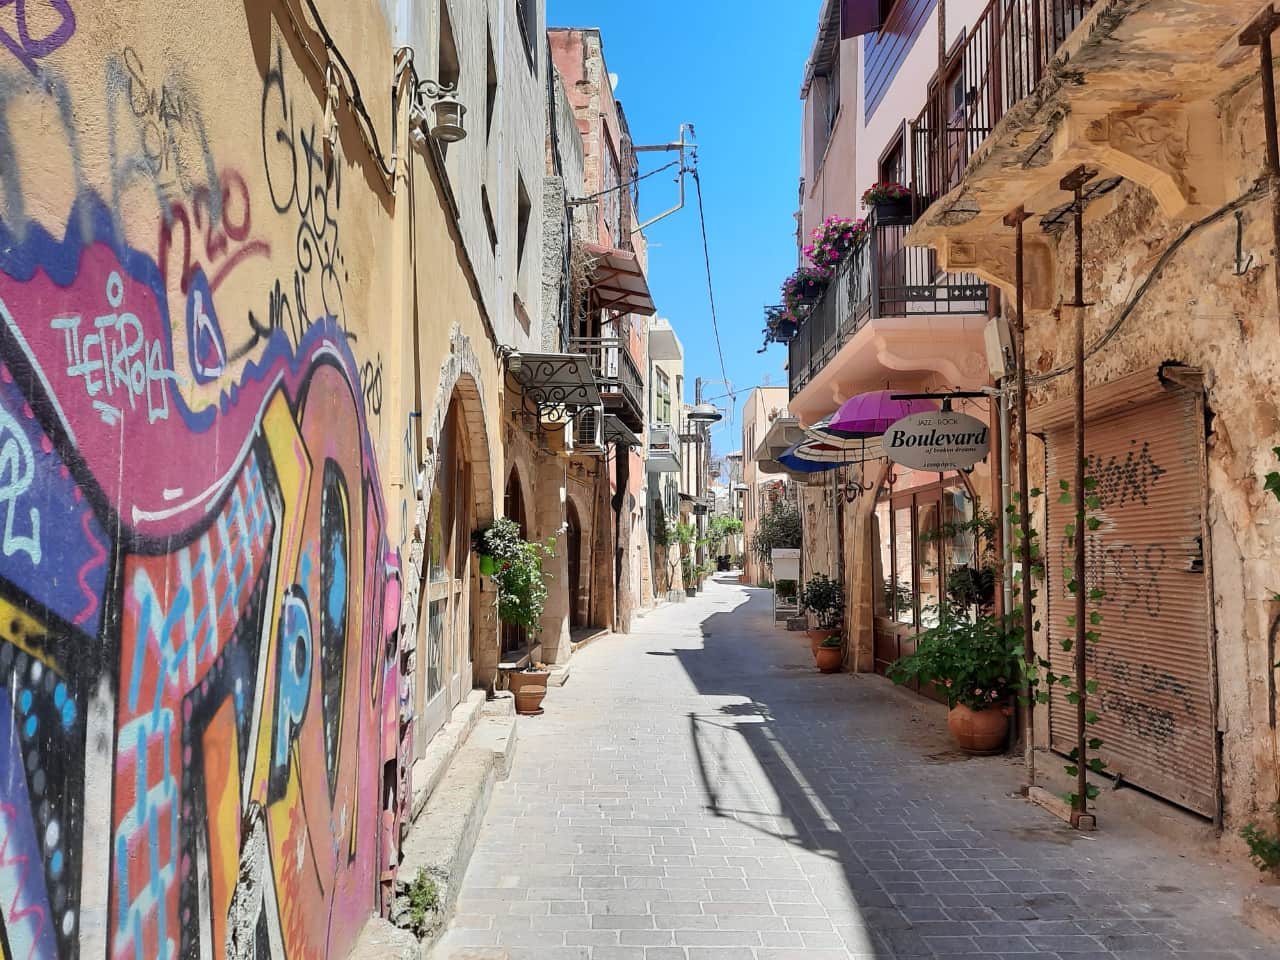 chania travel guide, chania city, hania town, chania things to do, chania hotels, chania where to stay, chania what to do, best sites chania town, chania history museums, chania gastronomy, chania travel tips